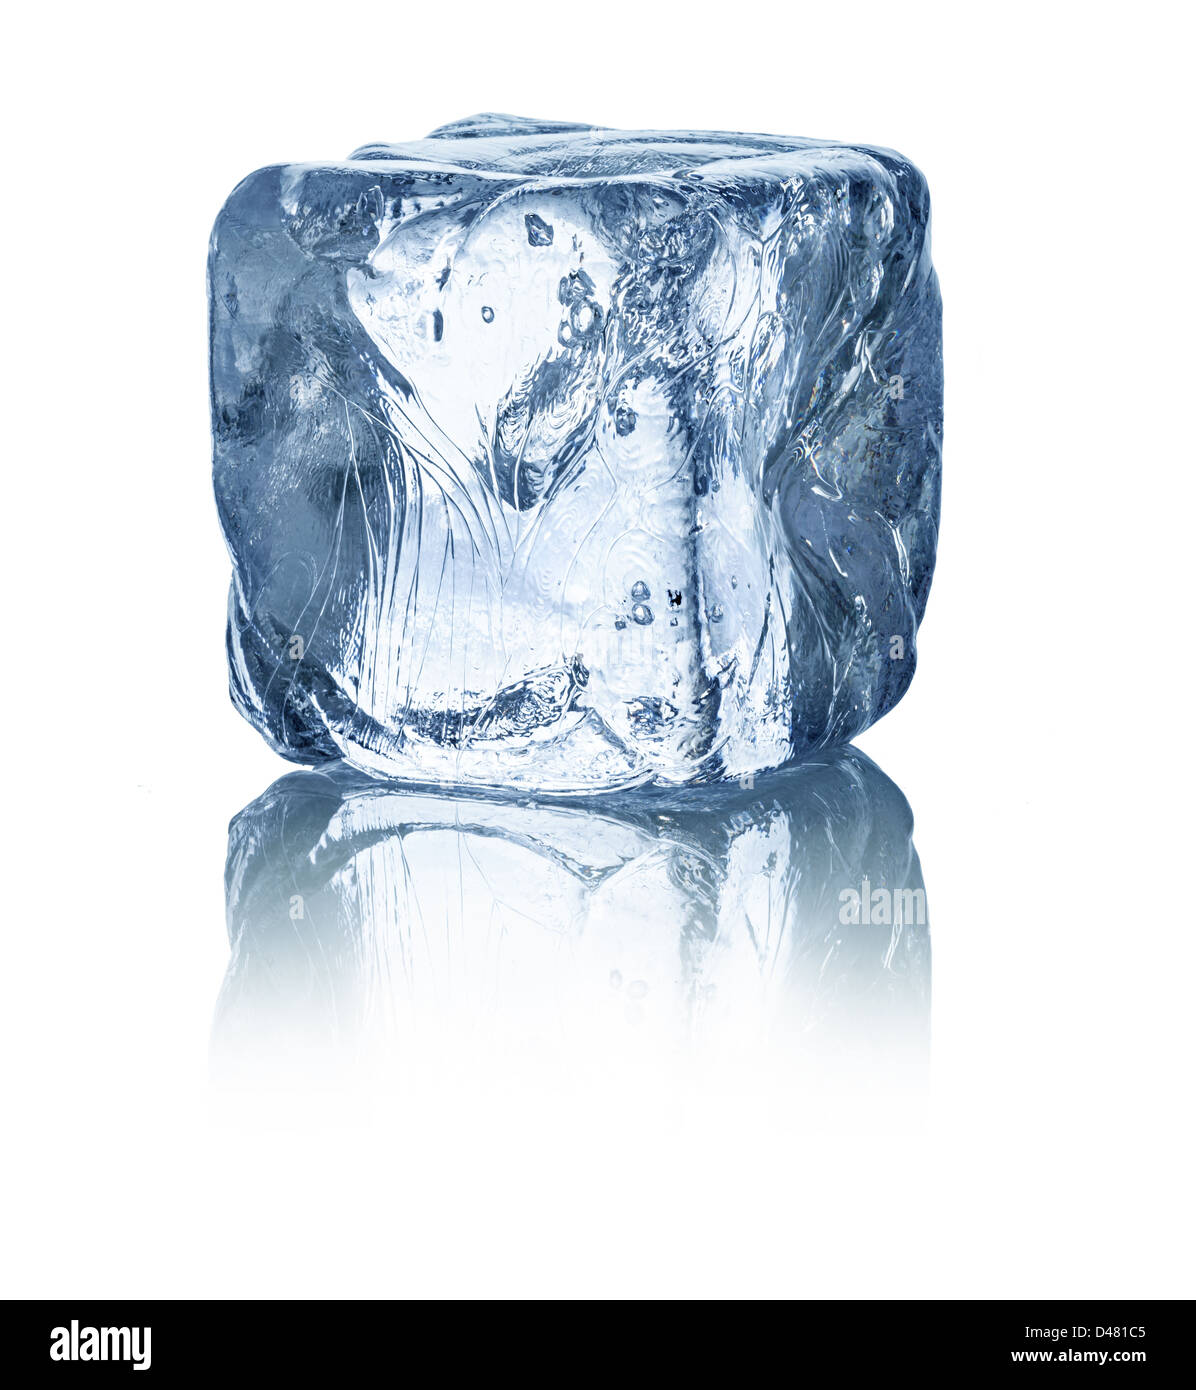 ice cube in front of white background - Stock Image